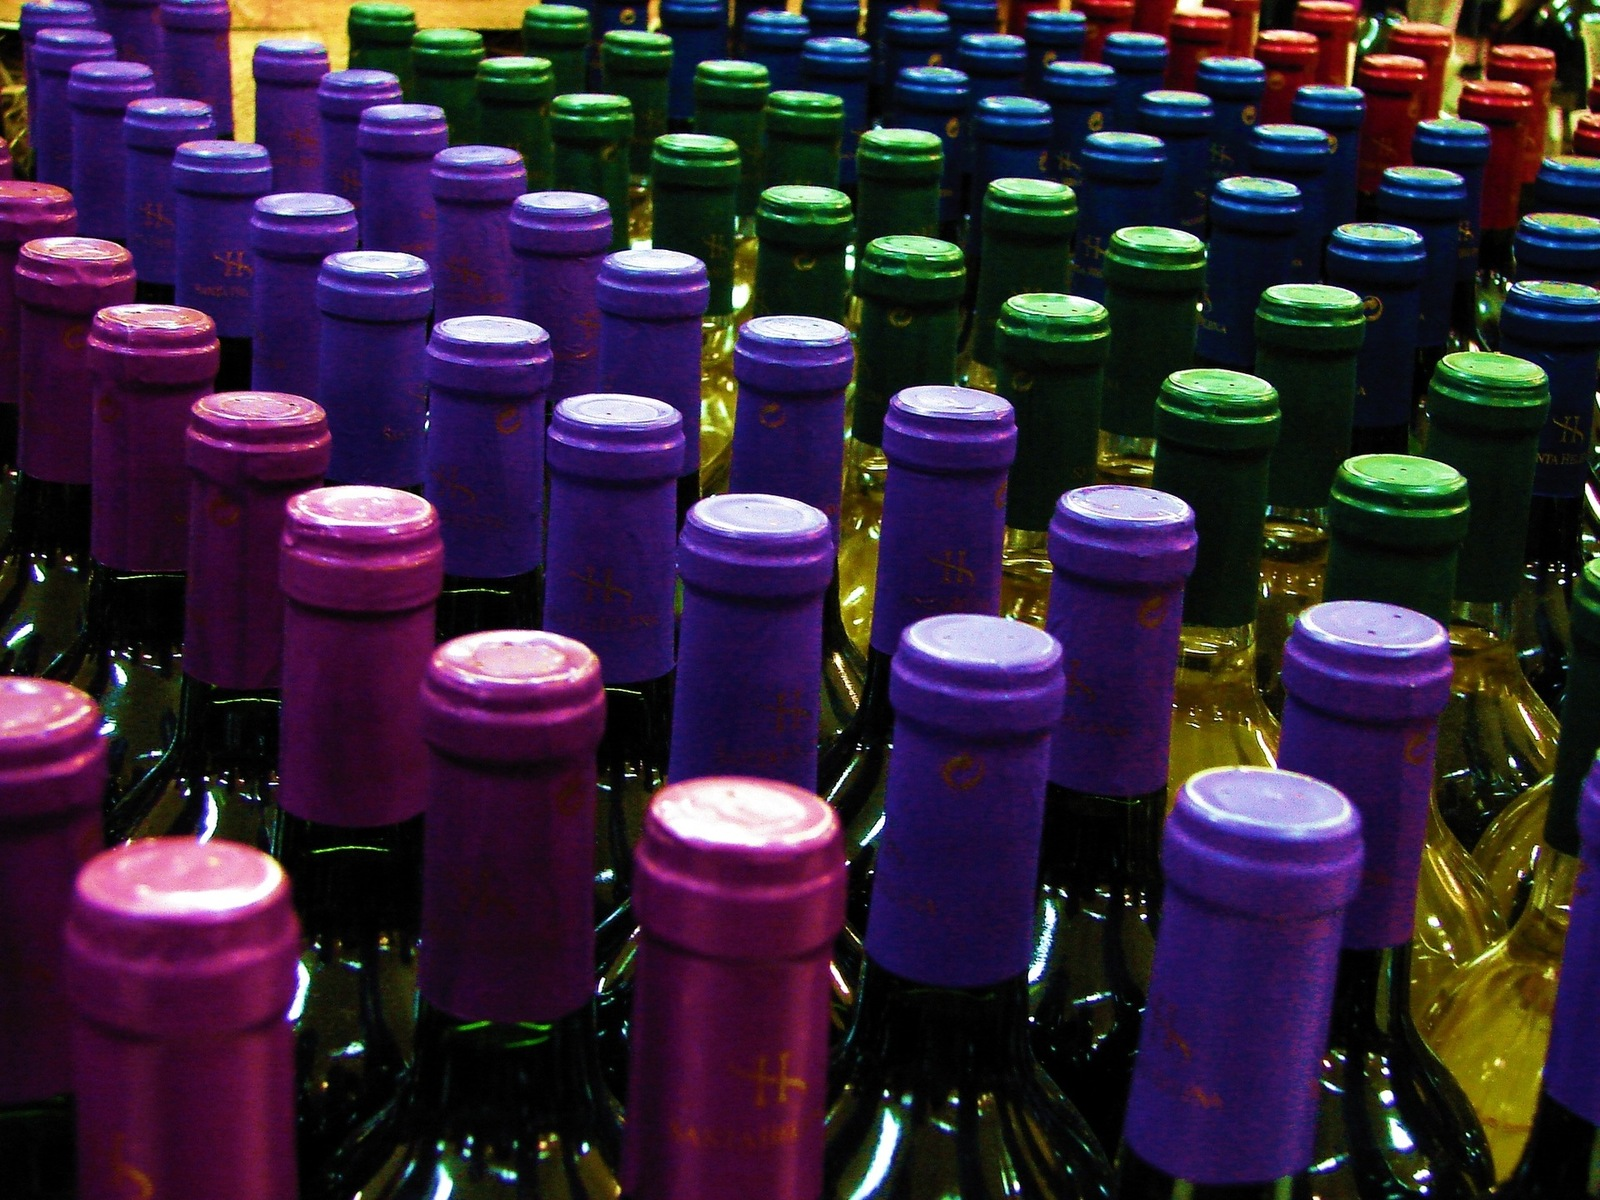 bottles-of-wine-1426492-1600x1200